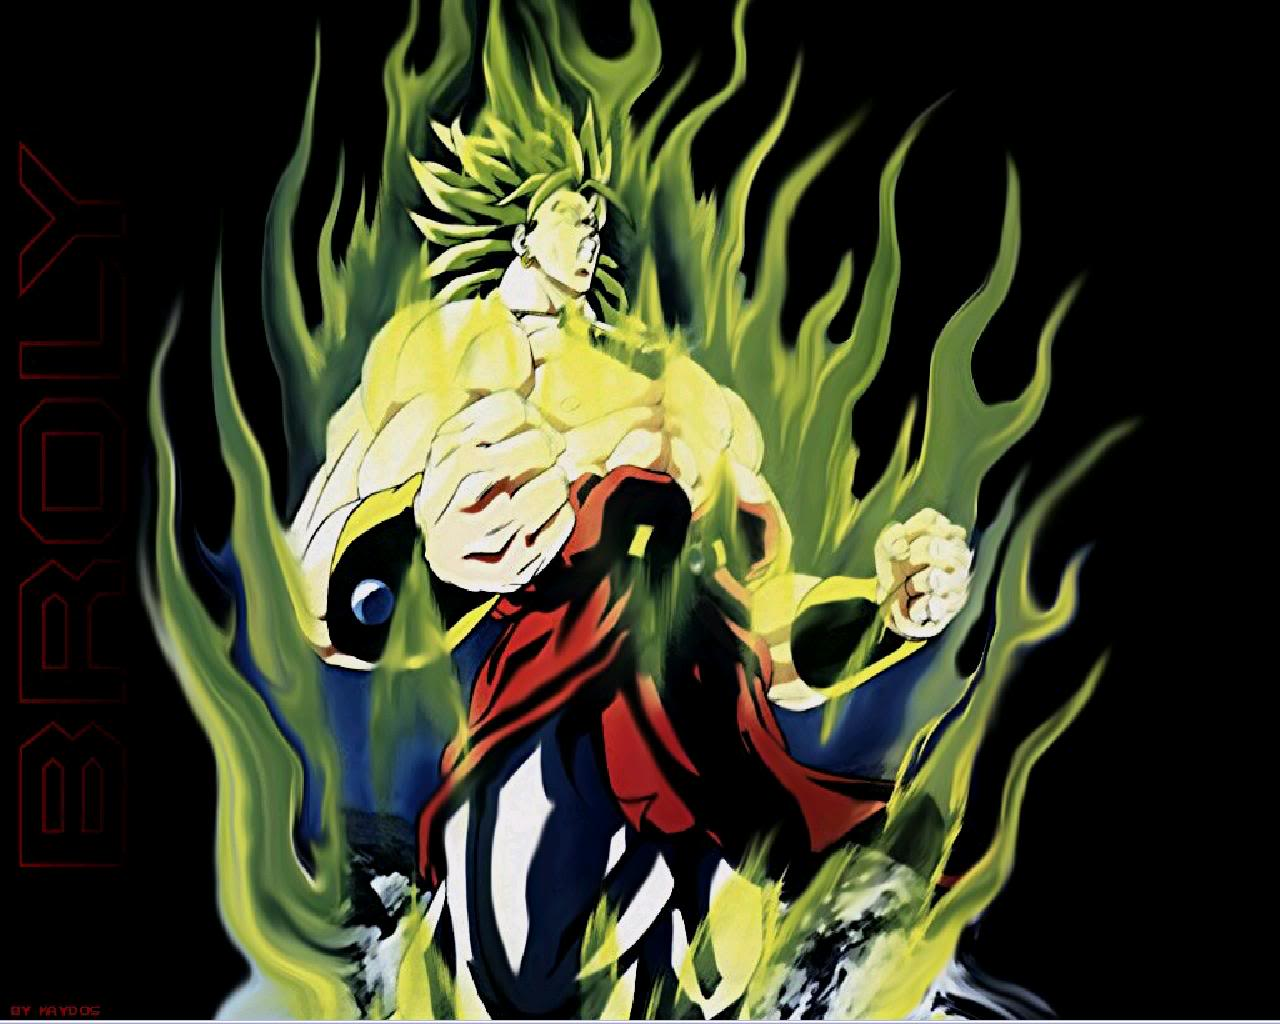 Broly Wallpapers Group